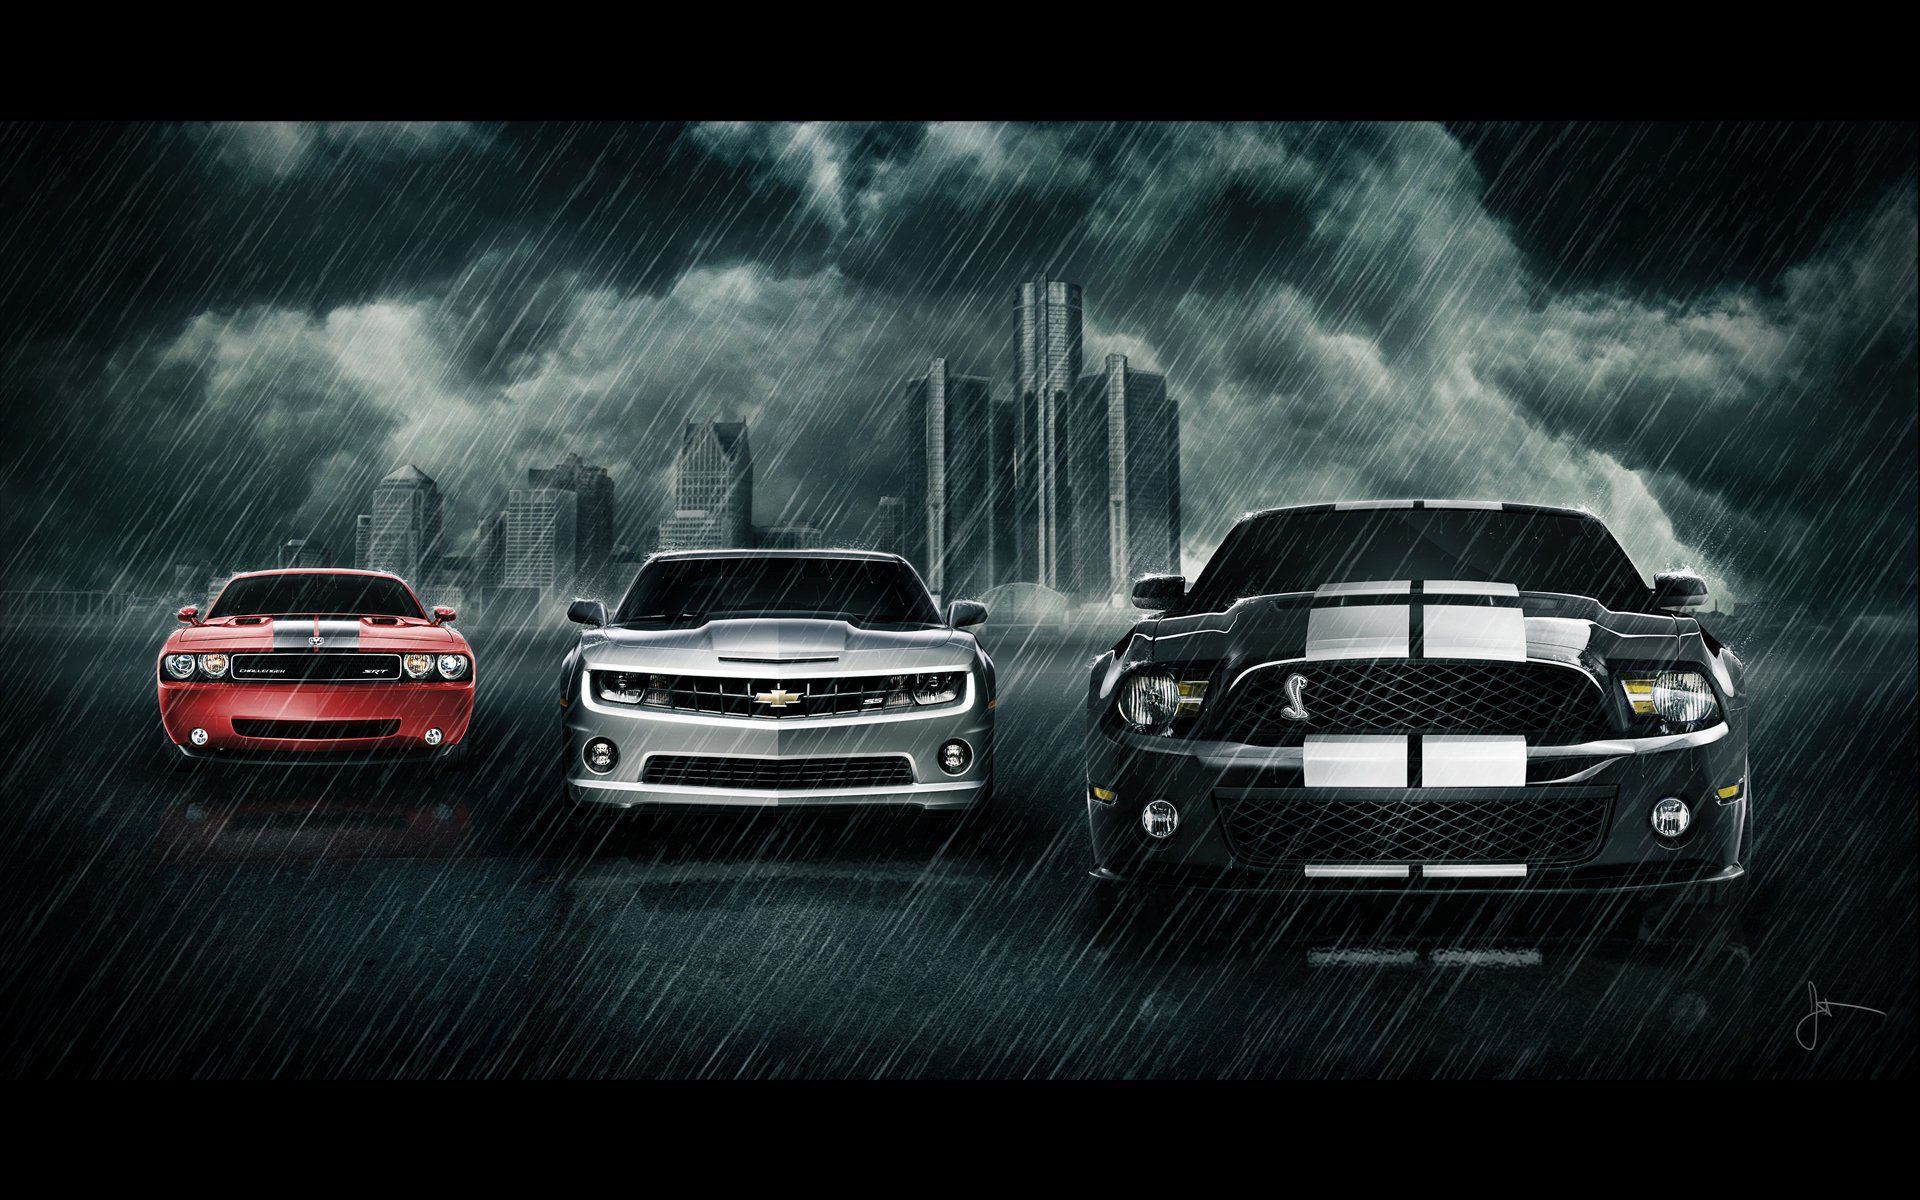 We have 59 background pictures for you. Full Hd Car Wallpapers Top Free Full Hd Car Backgrounds Wallpaperaccess